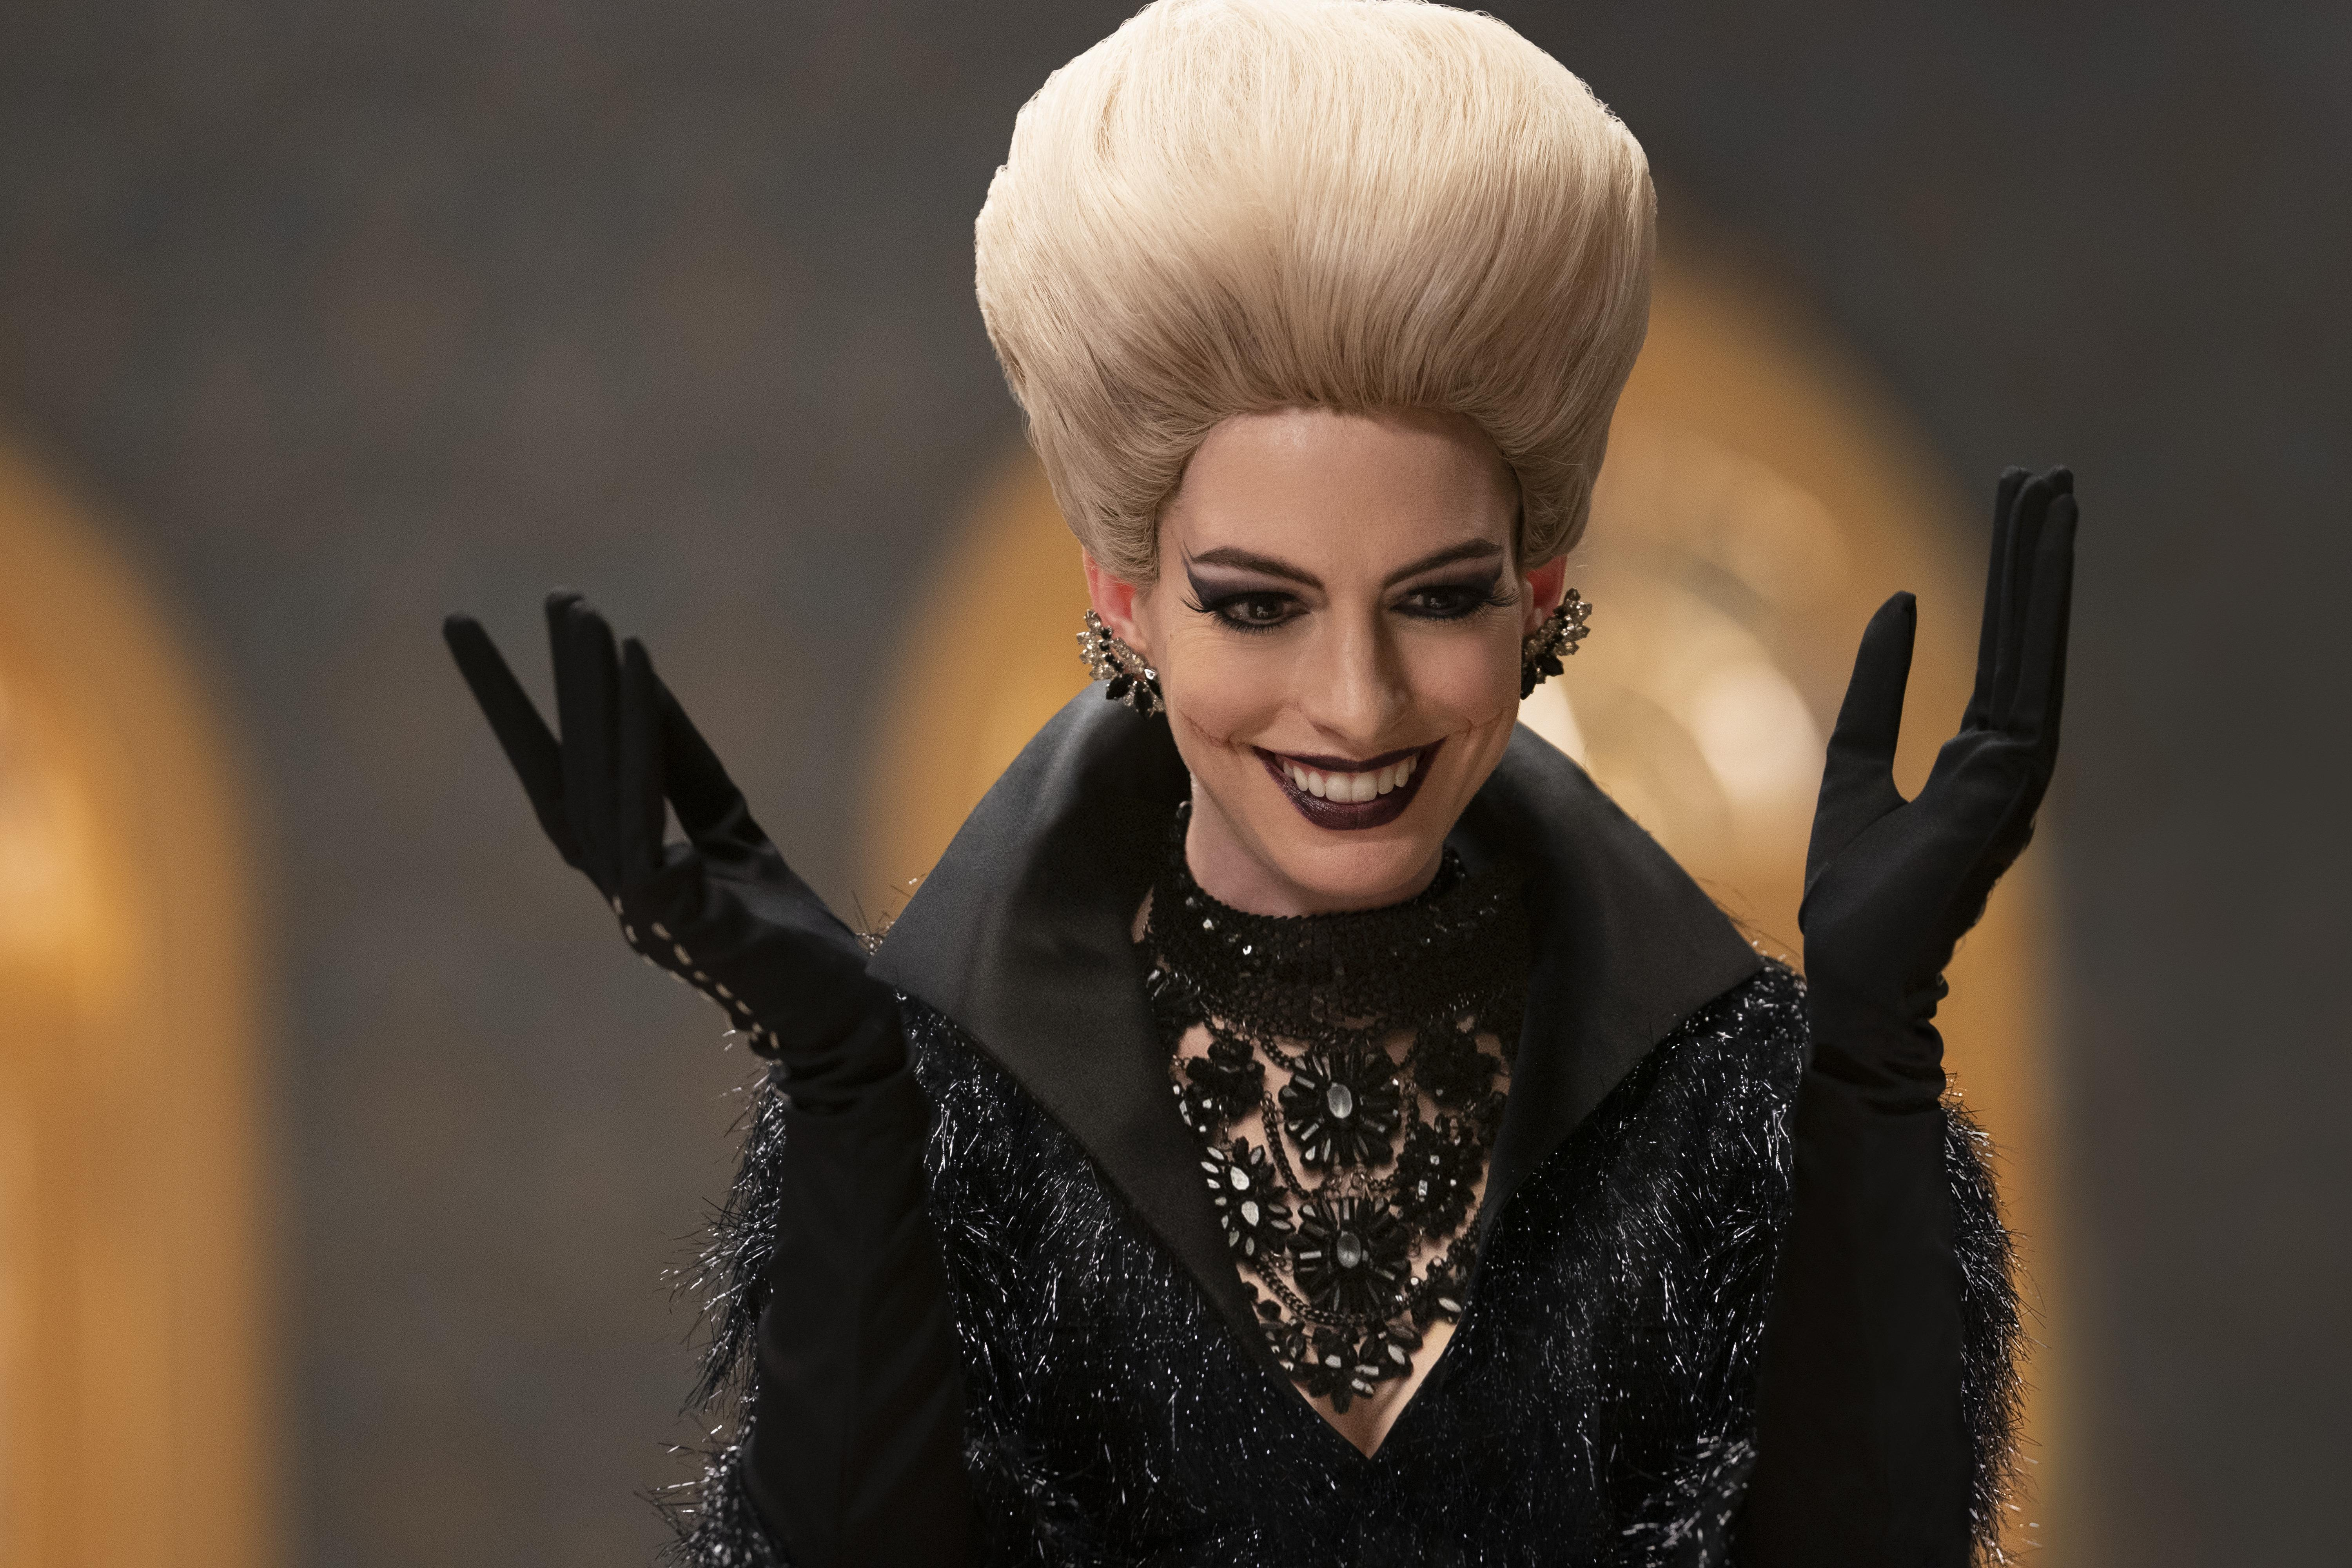 The Witches Reboot is Getting Flak from the Disability Community